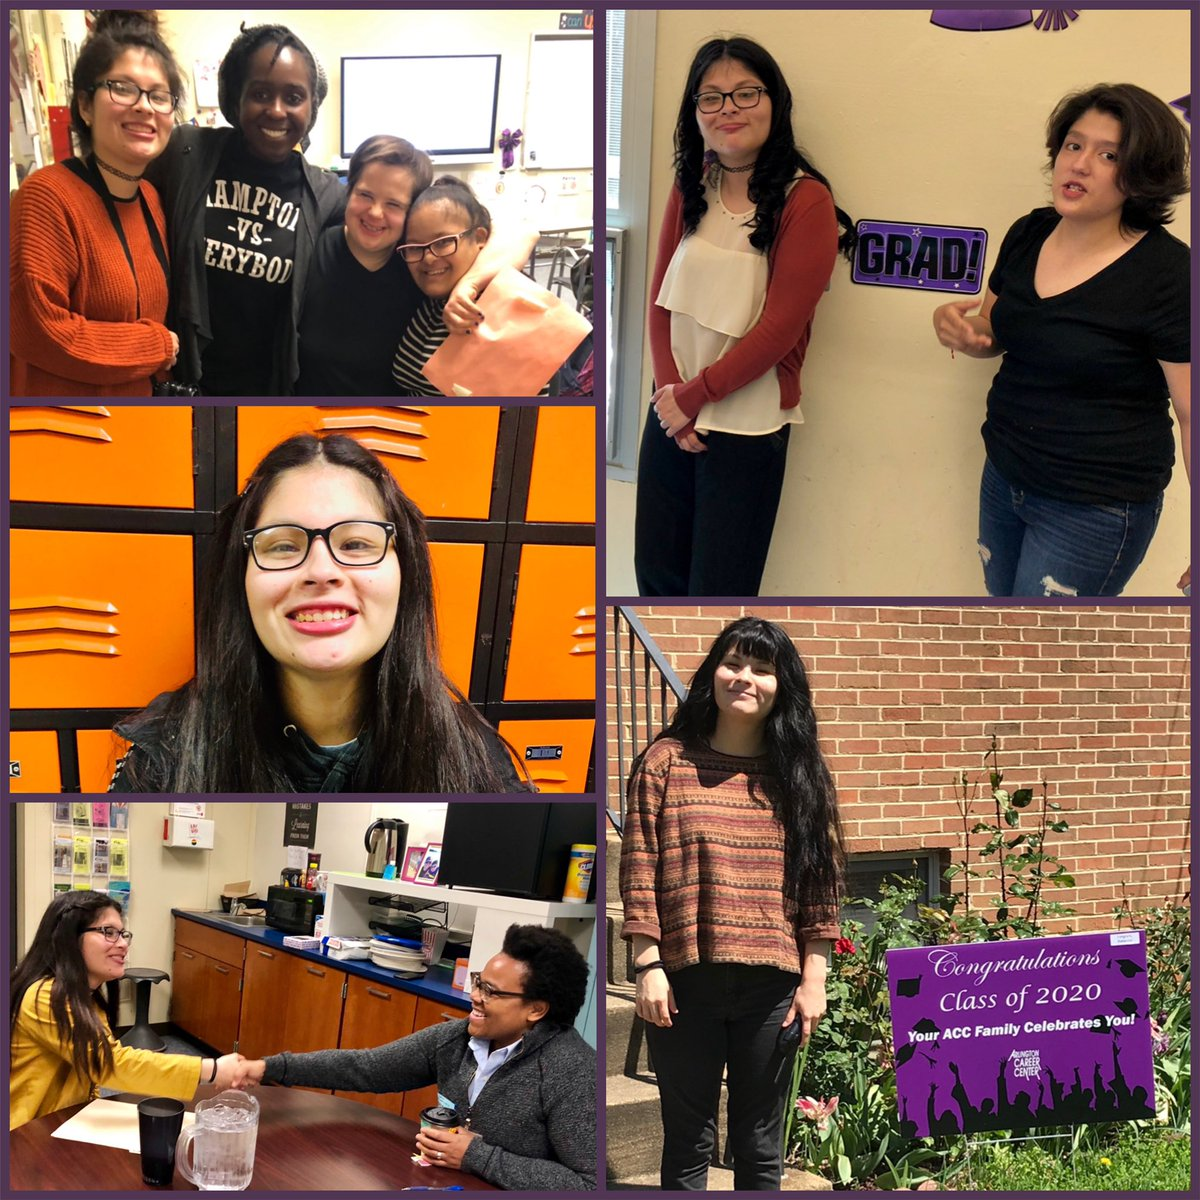 Please help us celebrate another one of our fantastic PEP graduates, Rebecca! We are all so proud of her accomplishments over the past 3 years and wish her the best next year! <a target='_blank' href='http://twitter.com/APSCareerCenter'>@APSCareerCenter</a> <a target='_blank' href='http://twitter.com/ACC_Partners'>@ACC_Partners</a> <a target='_blank' href='http://twitter.com/MsPollard_ACC'>@MsPollard_ACC</a> <a target='_blank' href='http://twitter.com/APSDrew'>@APSDrew</a> <a target='_blank' href='http://twitter.com/MPSArlington'>@MPSArlington</a> <a target='_blank' href='https://t.co/f1suYs86iu'>https://t.co/f1suYs86iu</a>